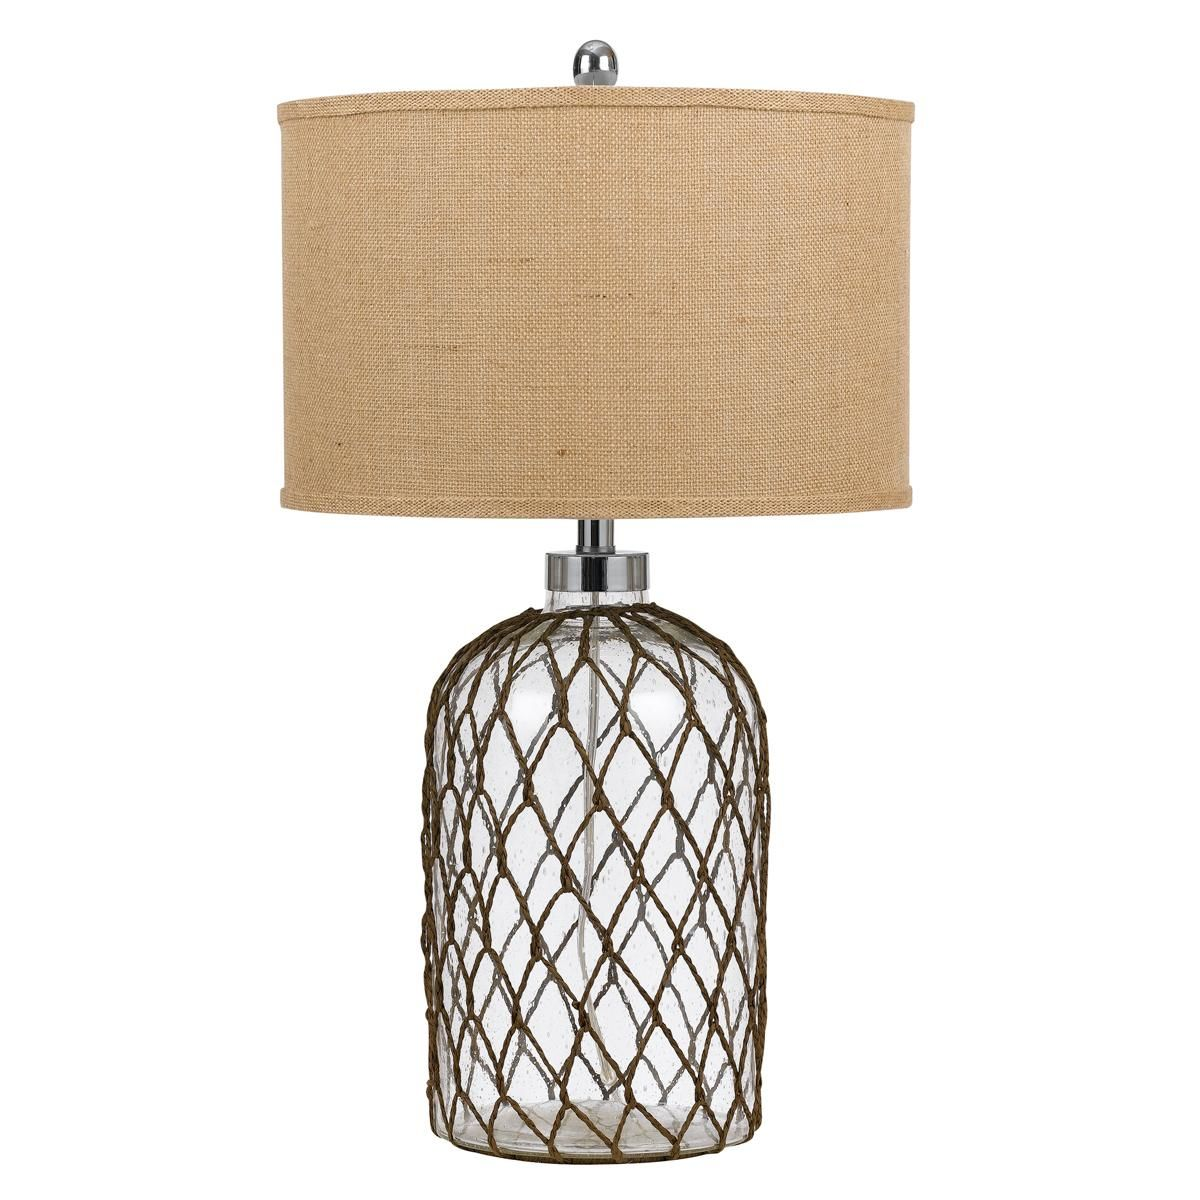 Fishnet Glass Jug Table Lamp | Glass, Beach condo and Beach themed decor for Macrame Table Lamp  186ref